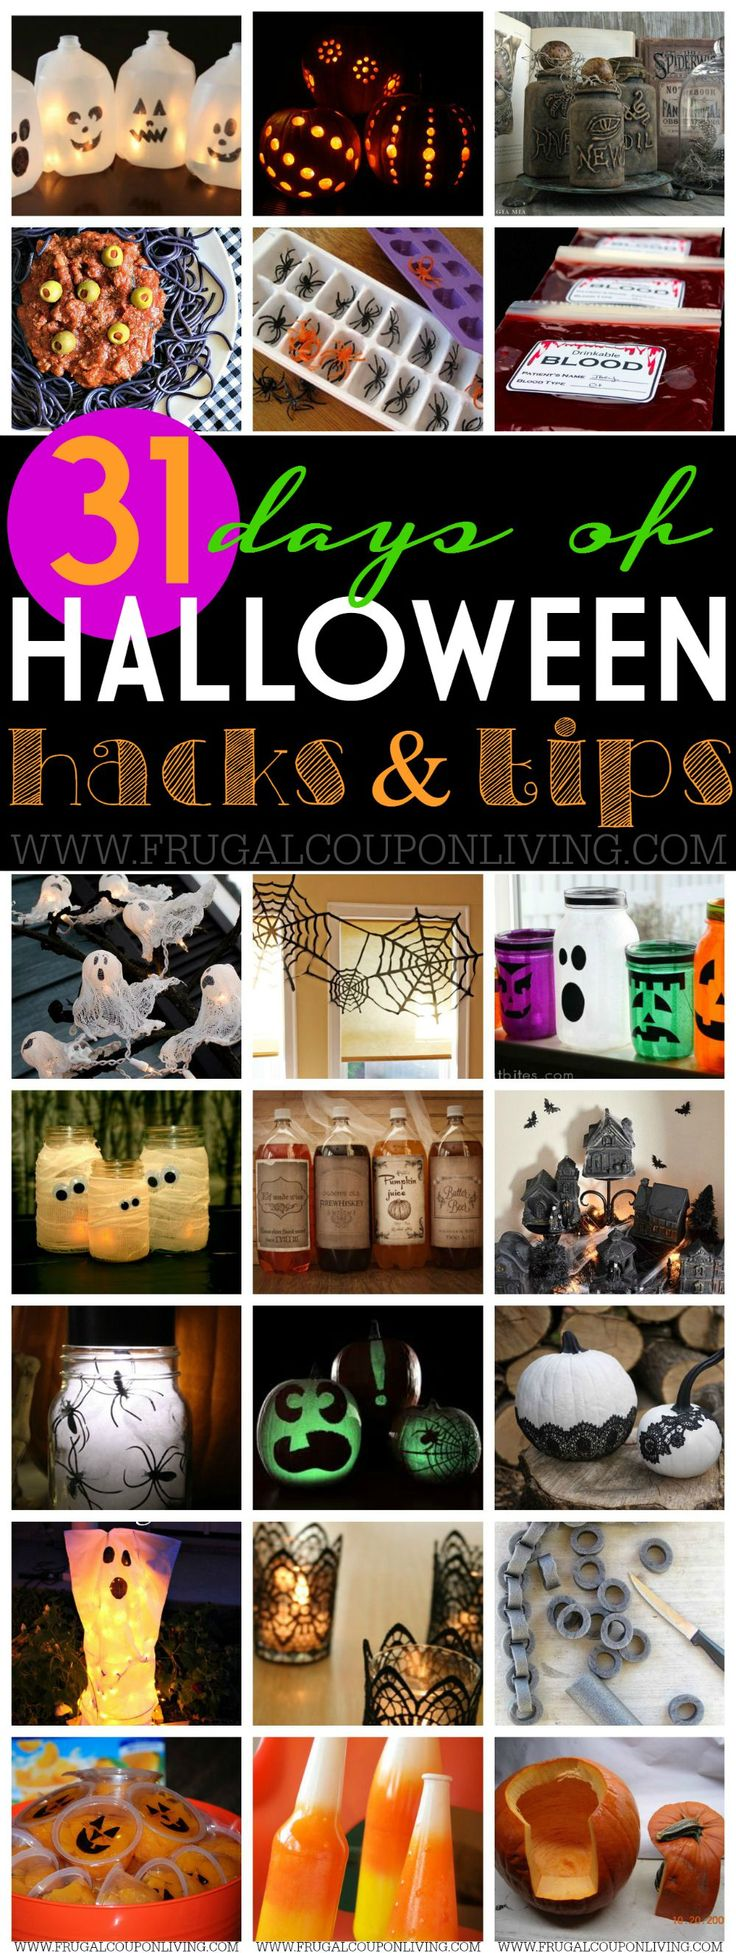 31 Days of Halloween Hacks & Tips on Frugal Coupon Living. Last minute decorations, pumpkin carving tips, DIY Halloween crafts and more! Pin to Pinterest.